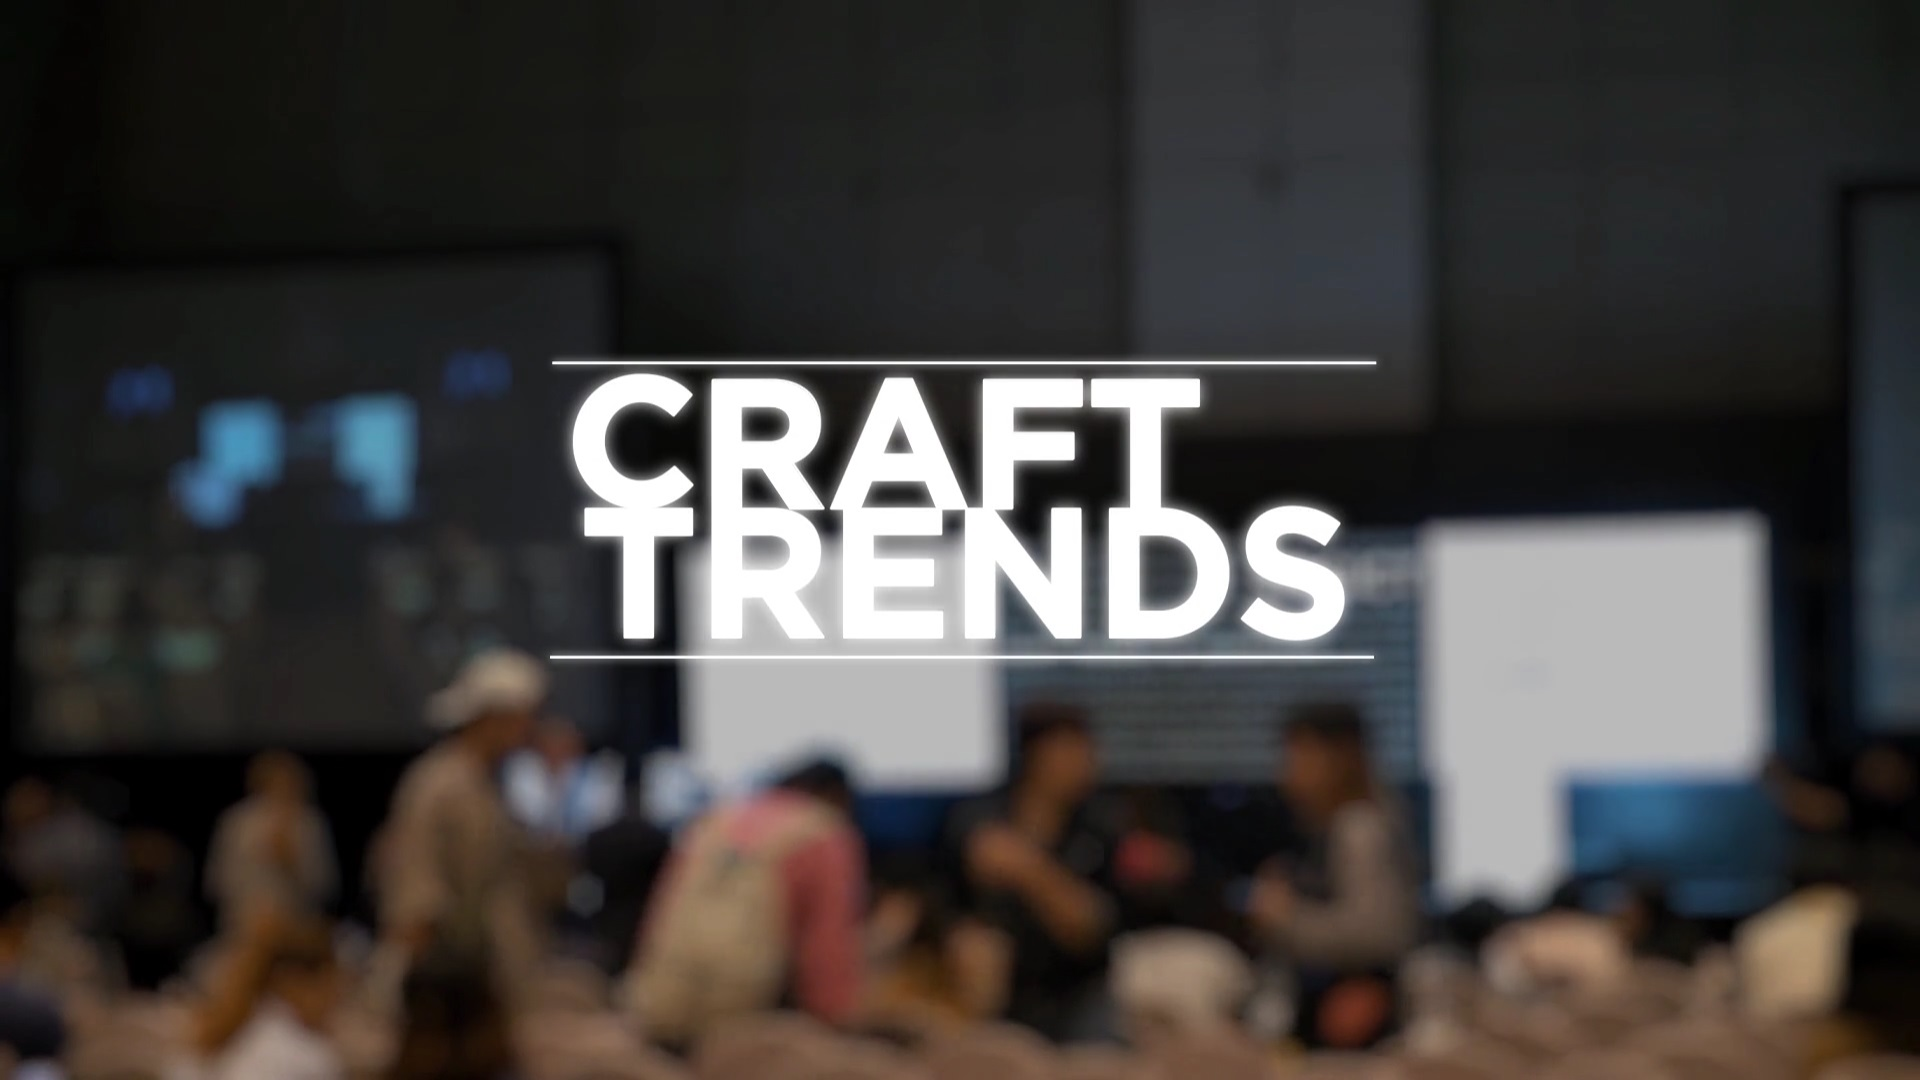 craft trends in asean+ 2016